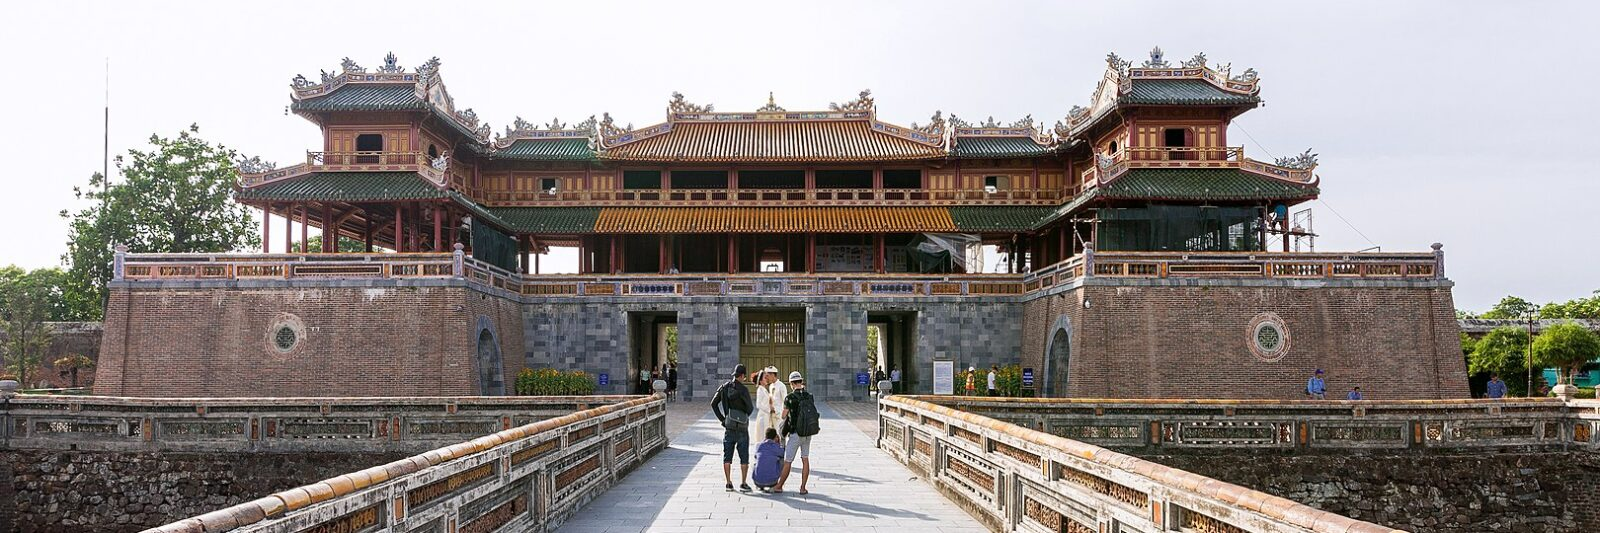 Image of the Meridian Gate in the Imperial City of Hue in Vietnam